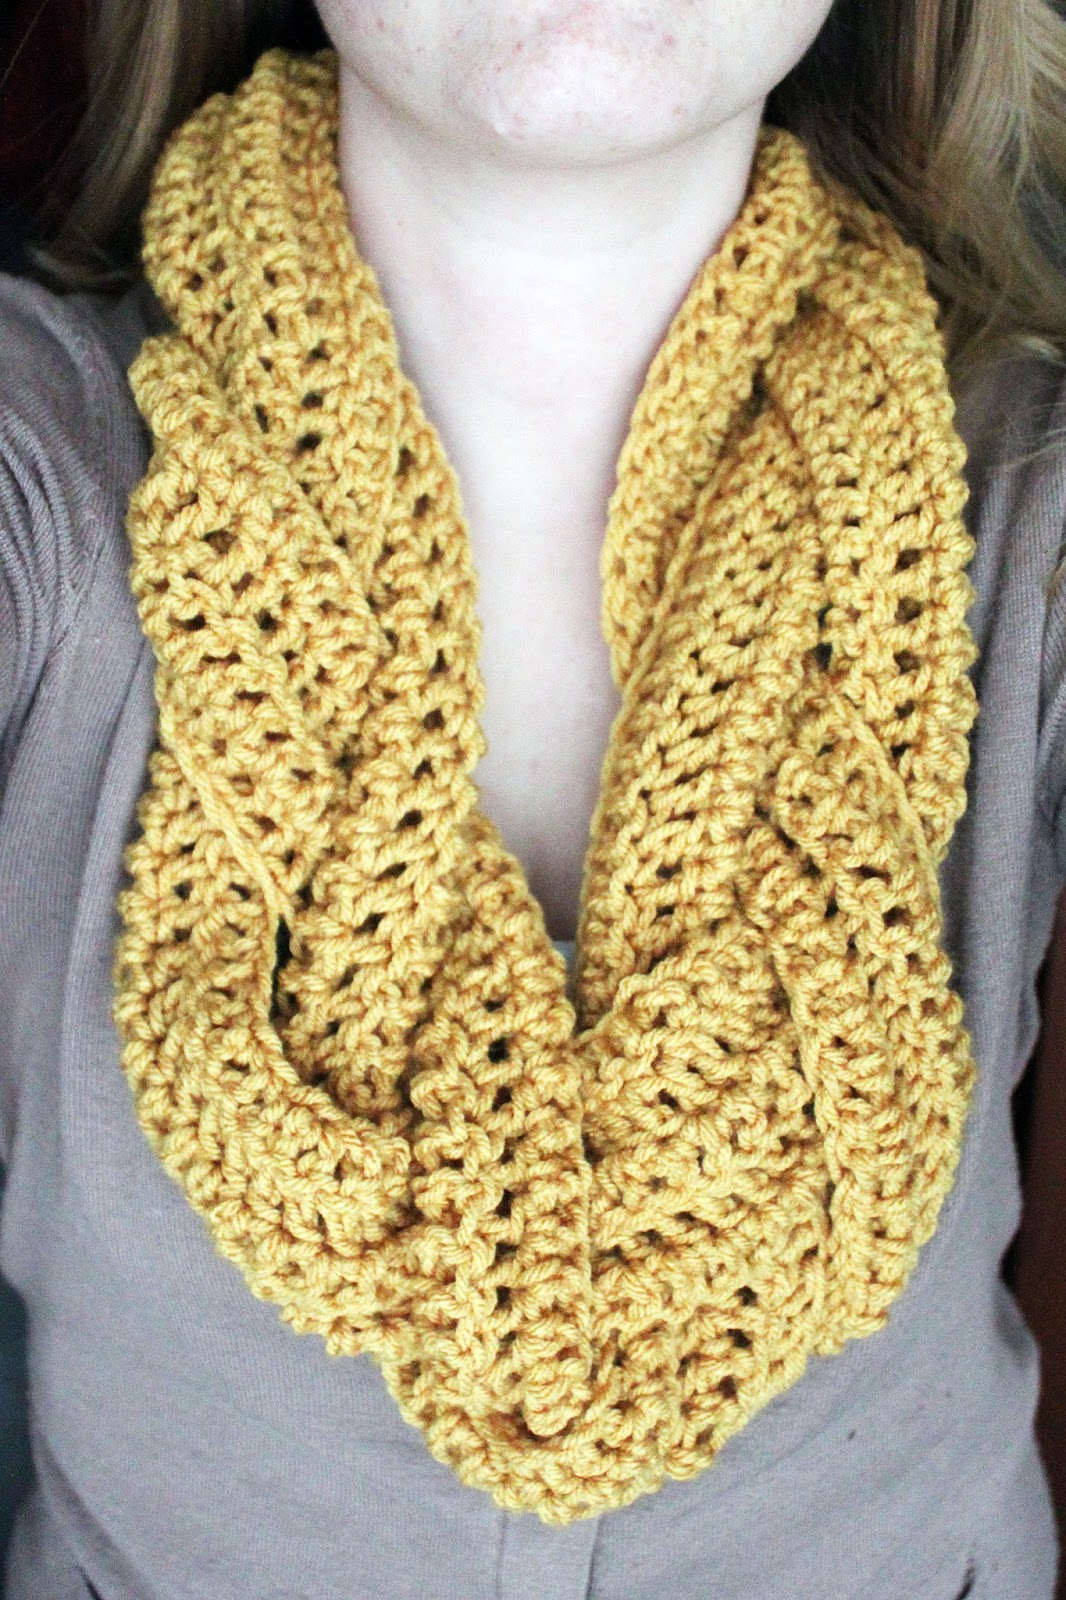 Rookie Crafter Braided Crocheted Scarf